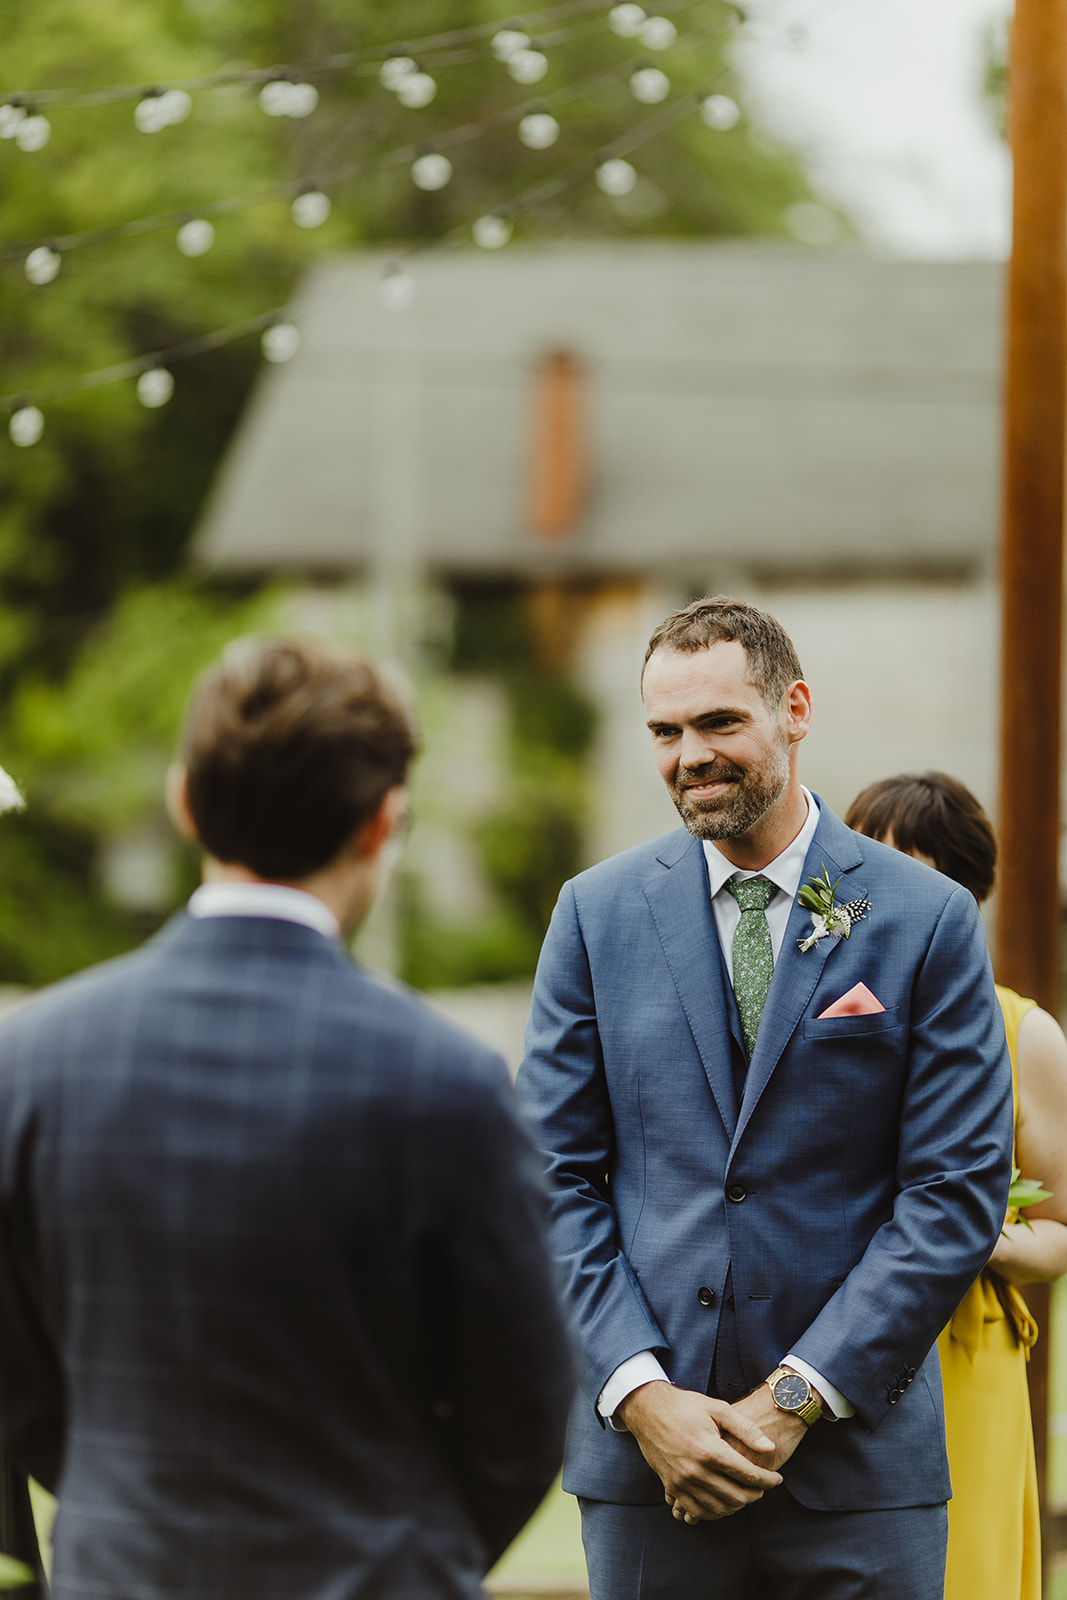 Groom smiling during his wedding